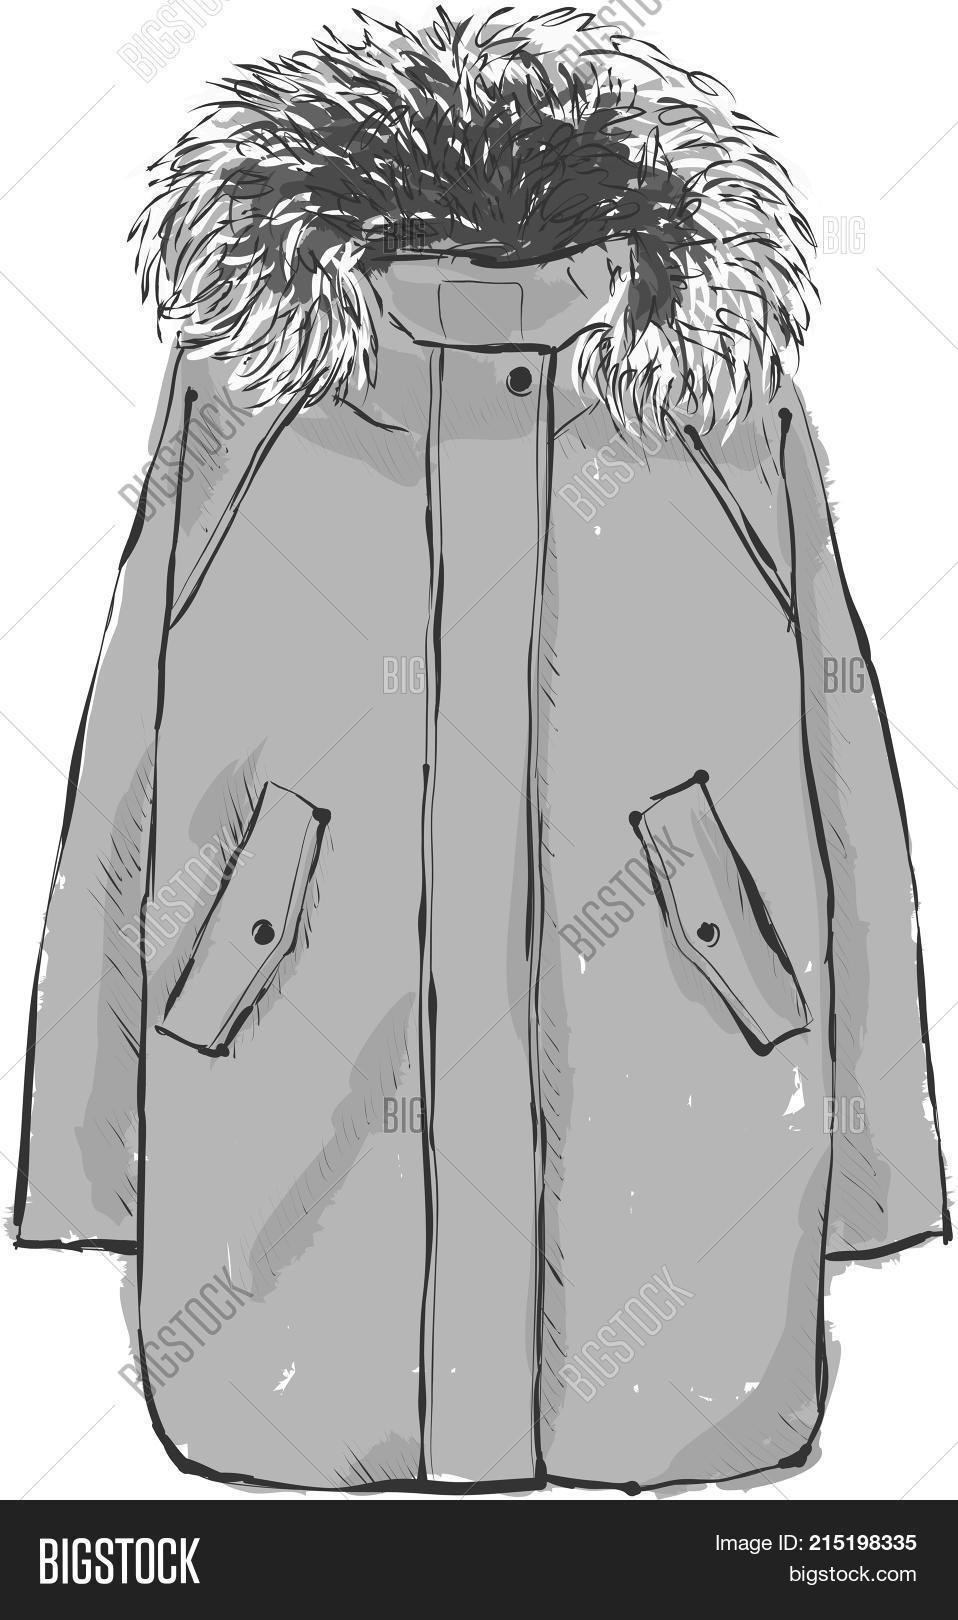 6173af57e75a New Year s warm gray parka jacket with fur. Winter collection of clothes.  Hand drawn vector illustration on a white background.